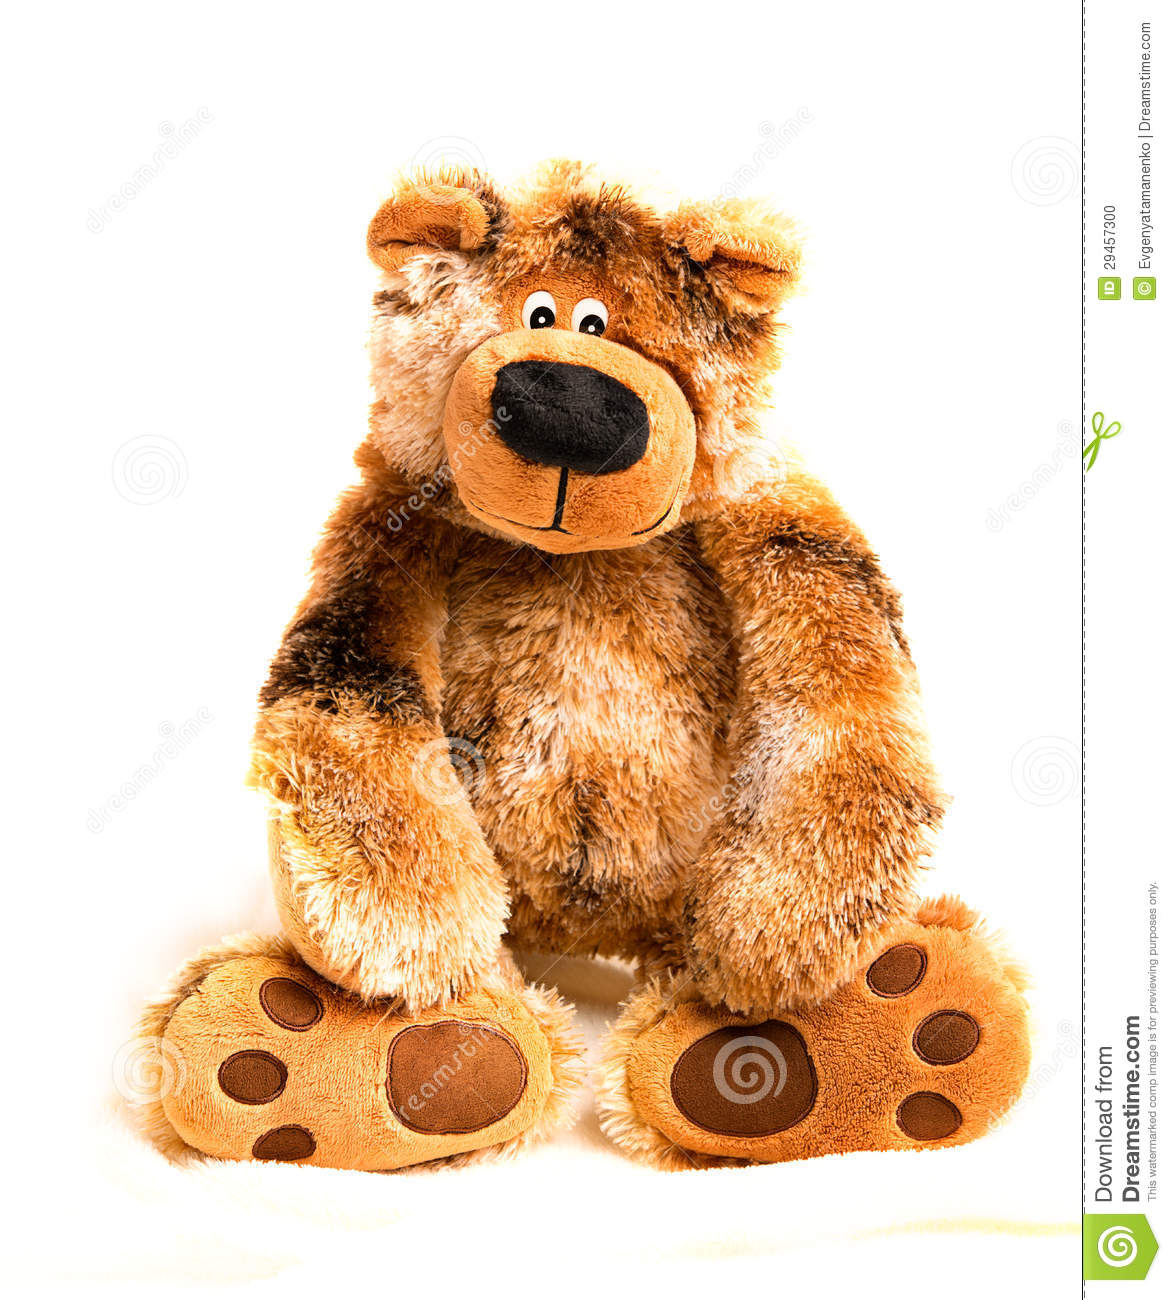 Soft Toy Teddy Bear Brown Stock Photo - Image: 29457300